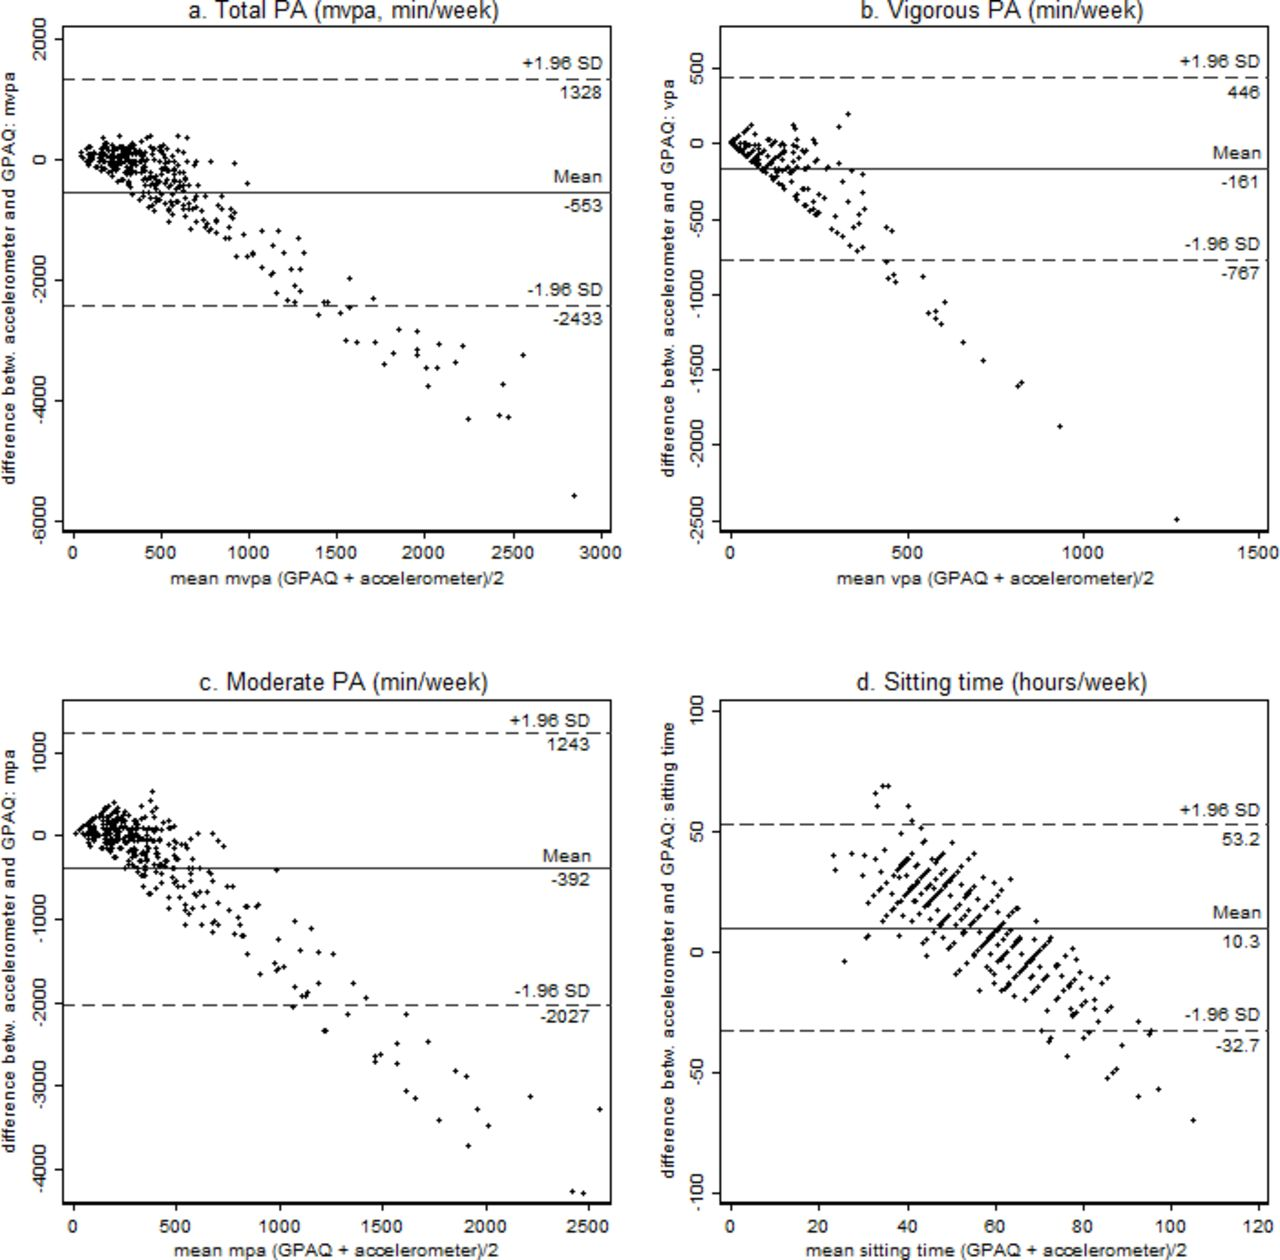 Validation of the Global Physical Activity Questionnaire for self